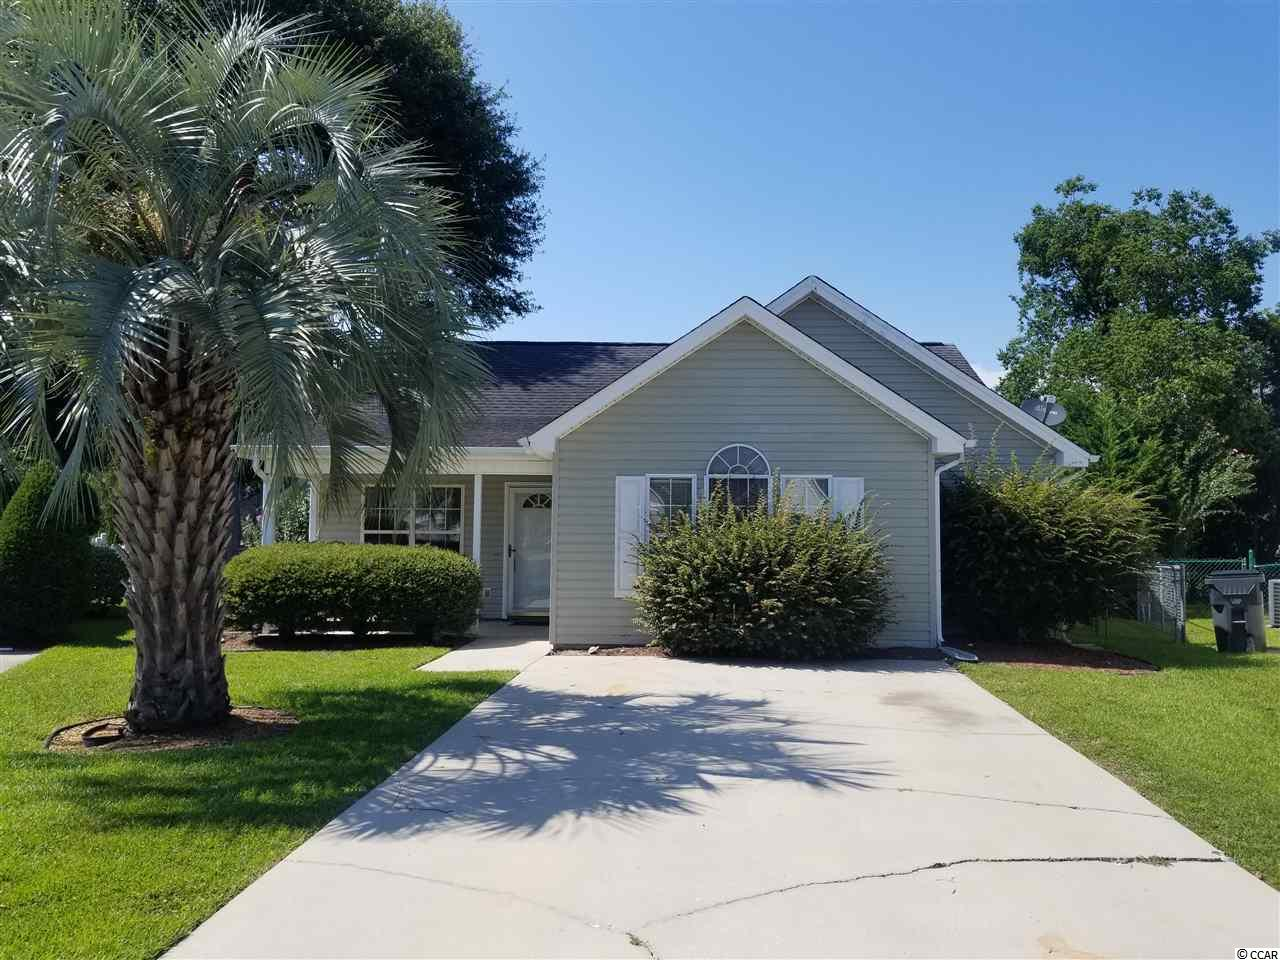 Lovely home with vaulted ceilings, new luxury vinyl flooring, carpet and freshly painted. Situated on a culdesac and conveniently located to all Surfside Beach has to offer. Square footage is approximate and not guaranteed. Buyer is responsible for verification. Seller is licensed SC real estate agent.